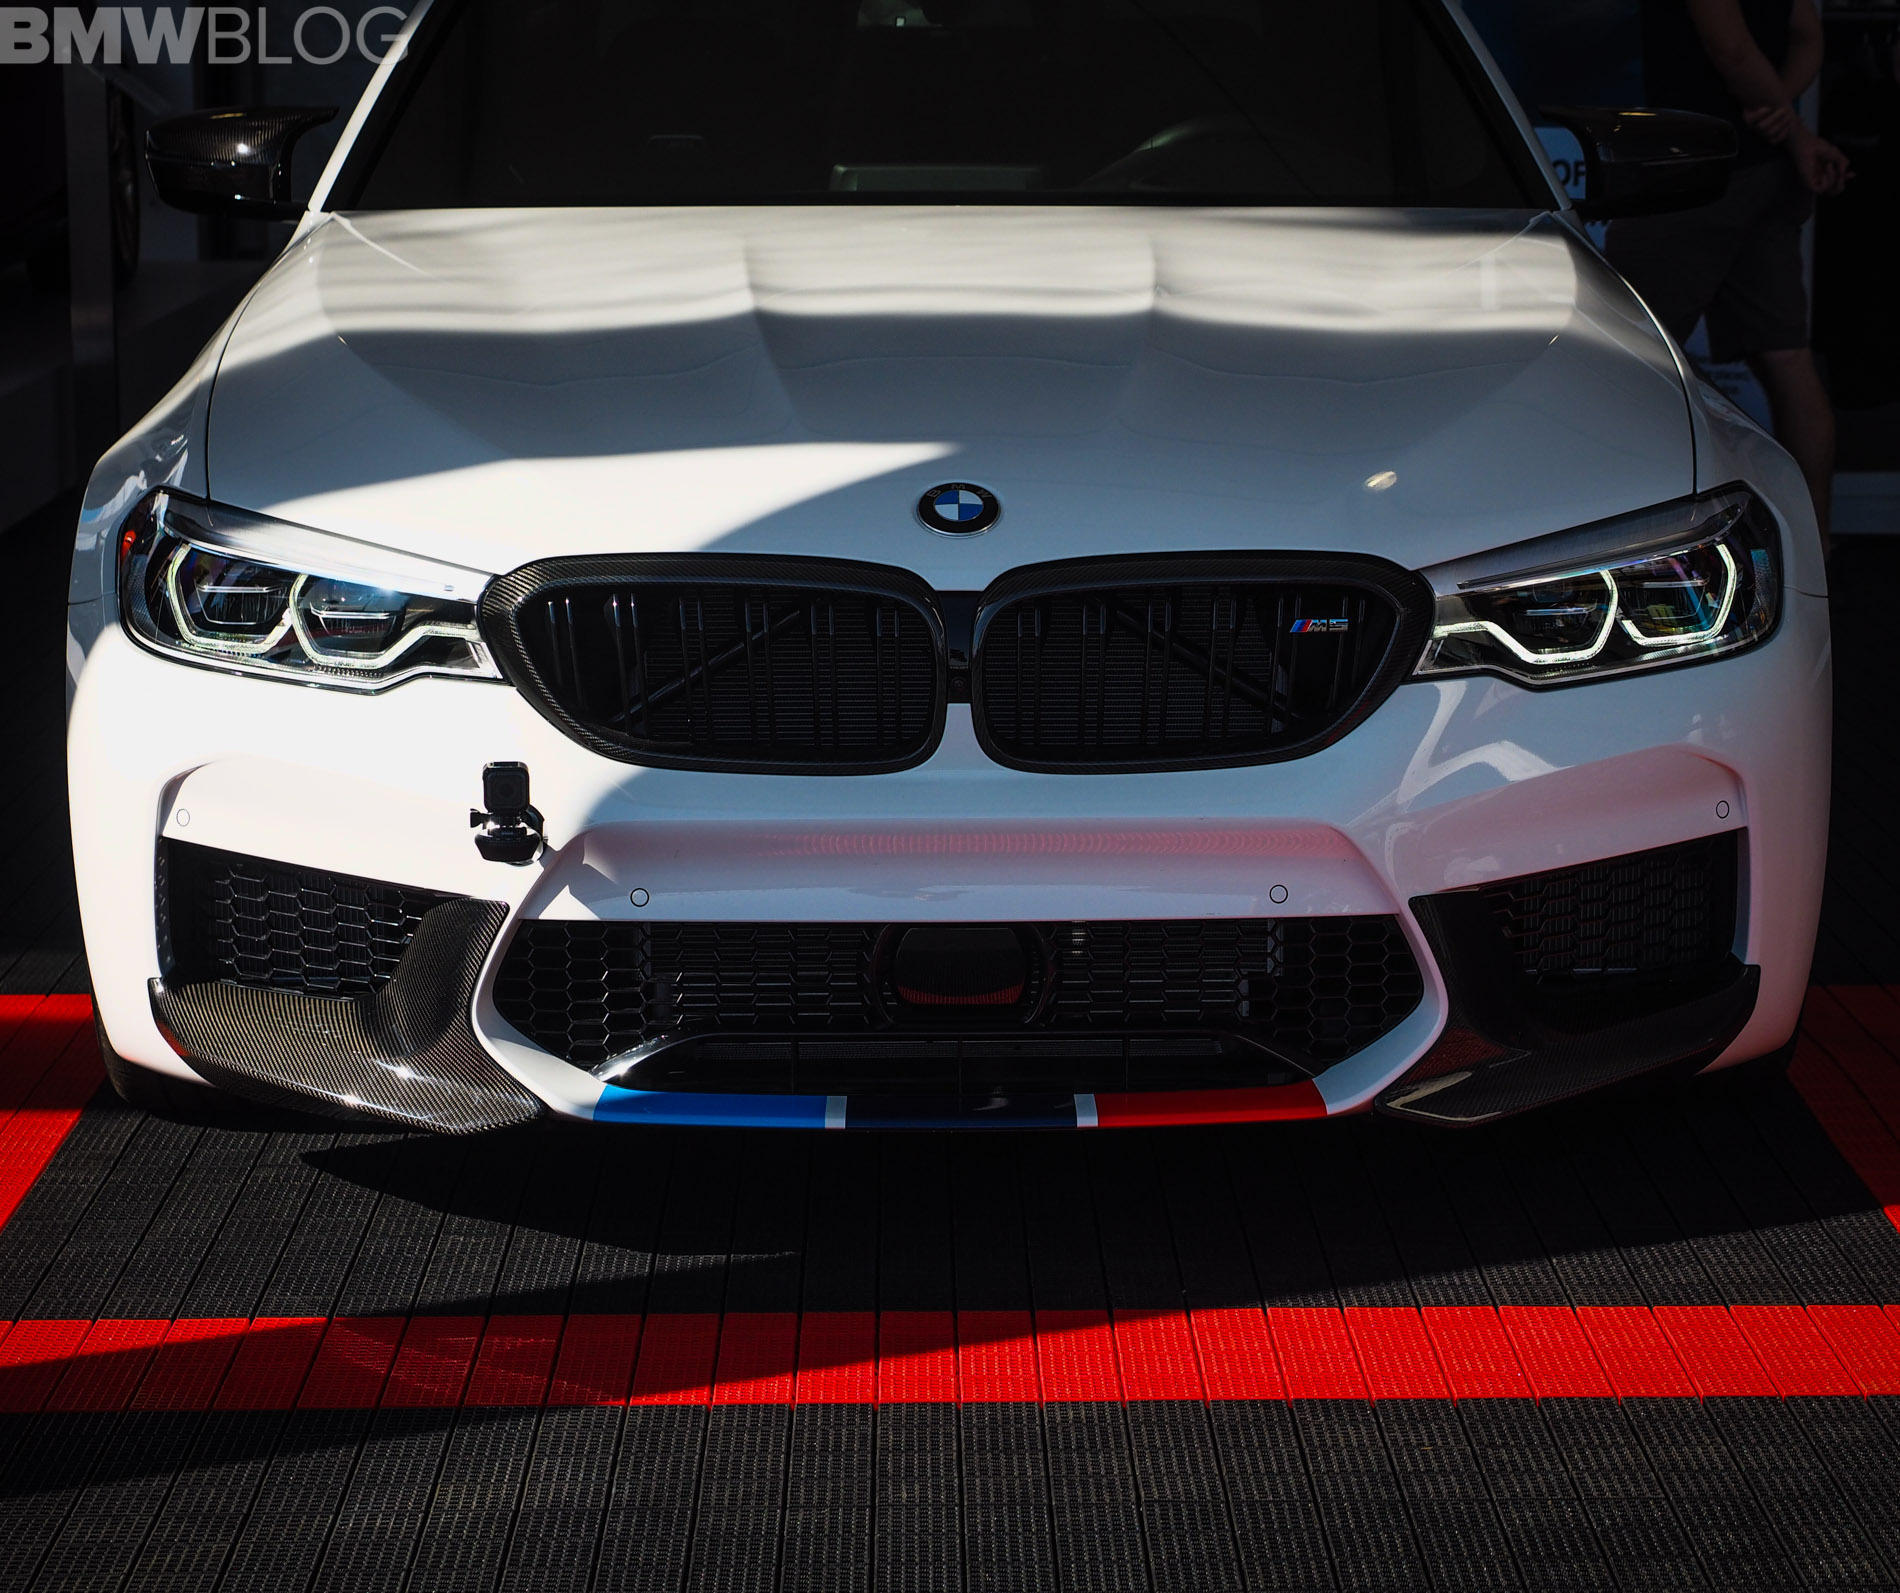 2017 Sema Live Photos Bmw F90 M5 With M Performance Parts